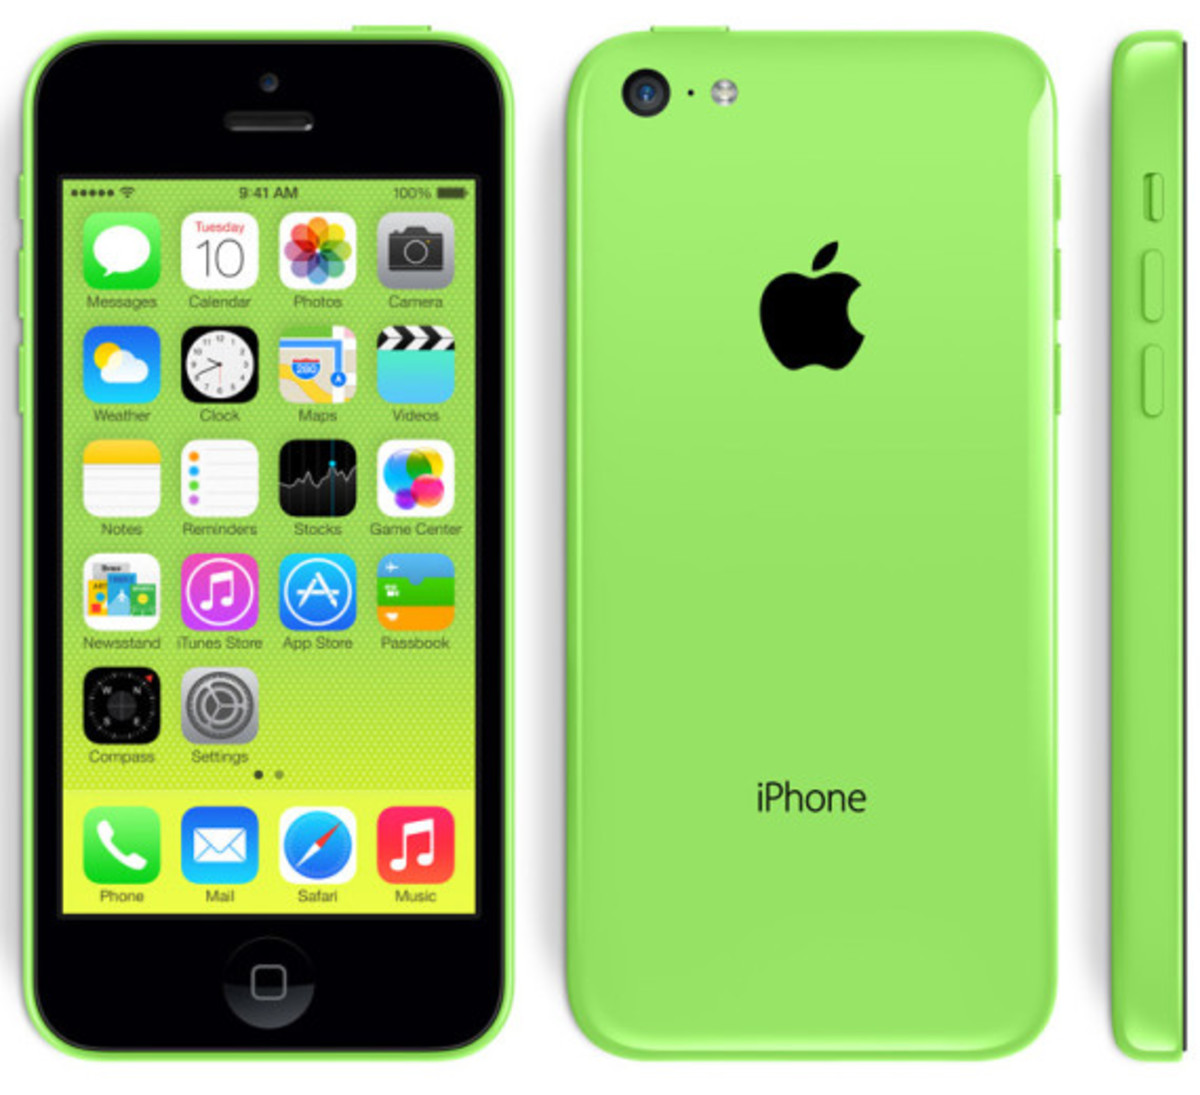 Apple iPhone 5C & 5S | Available Now - 12